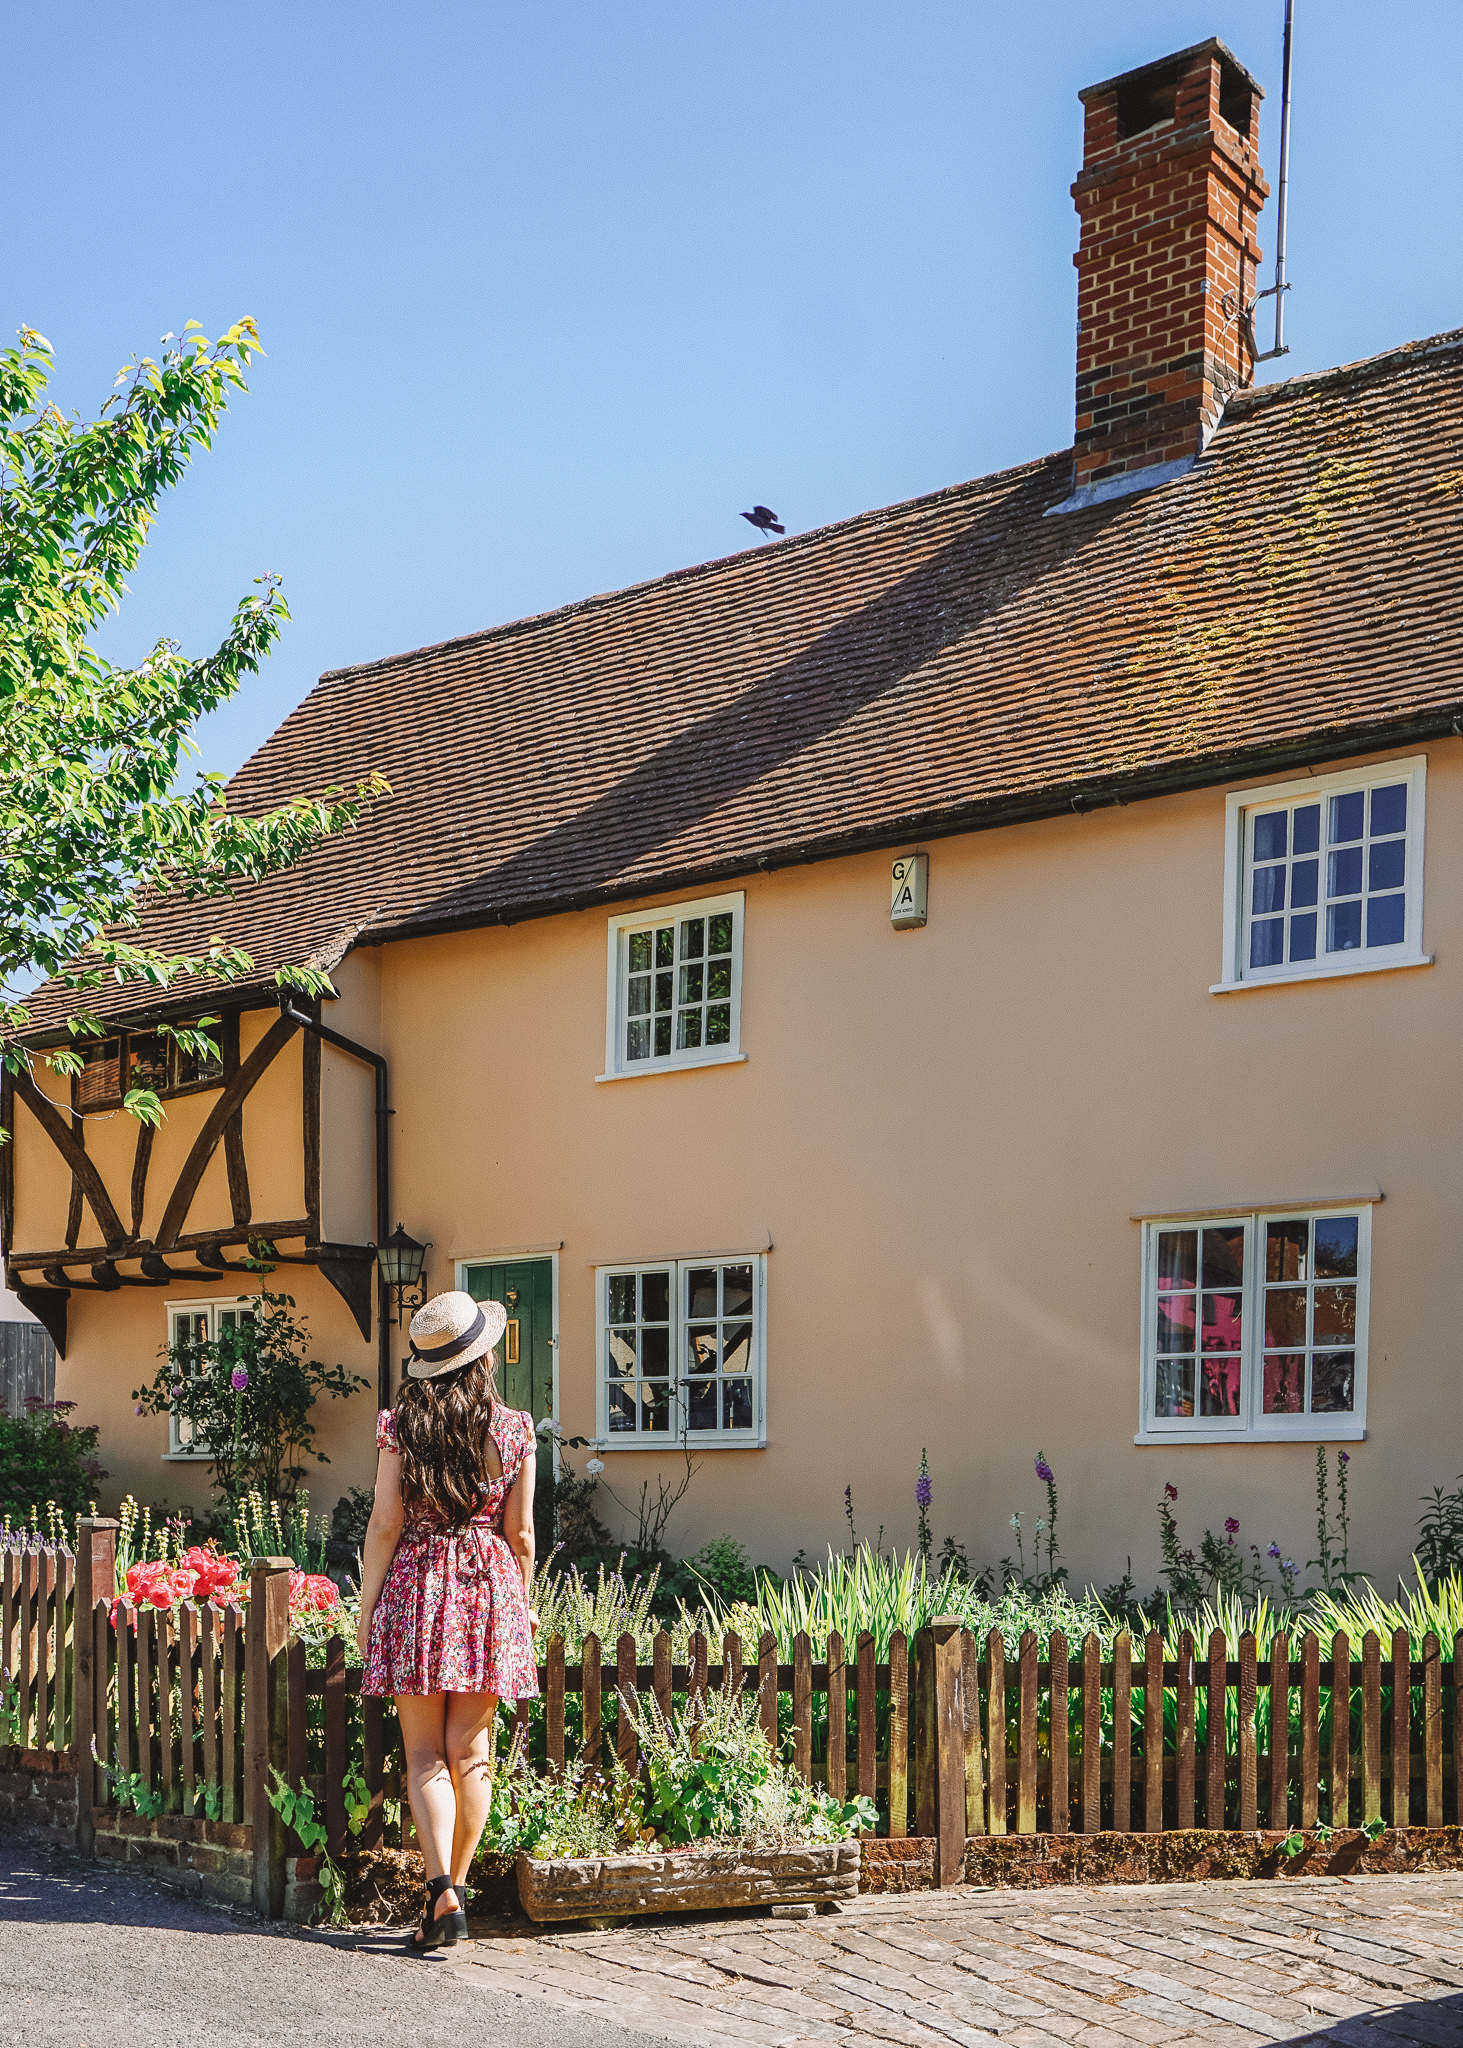 Cottages in Braughing, Hertfordshire